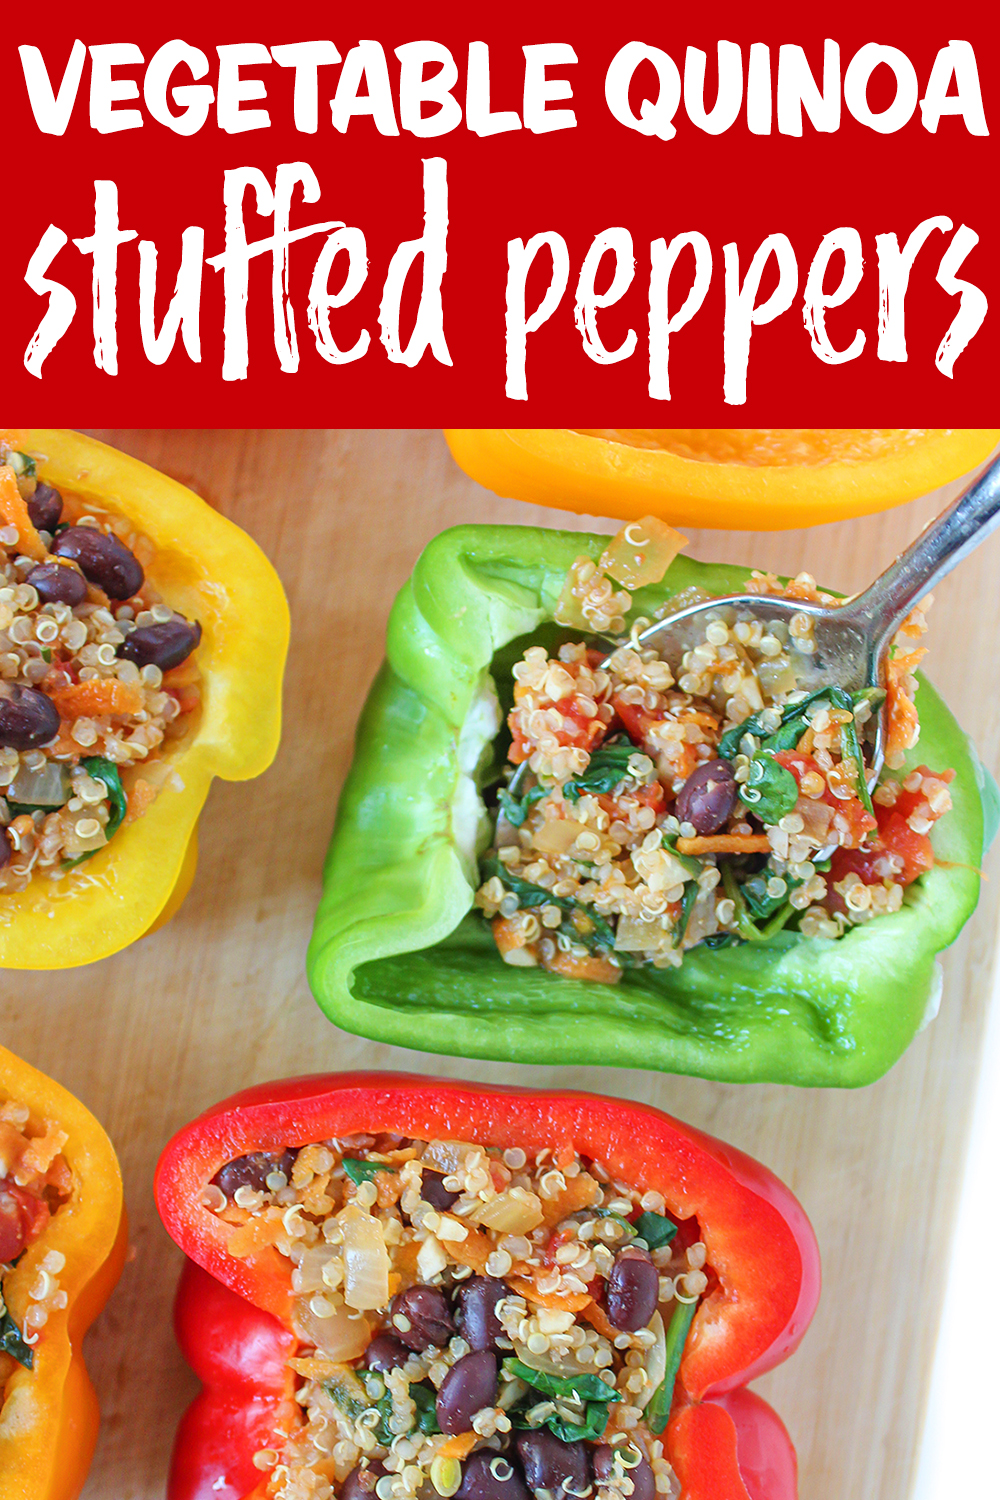 vegan stuffed peppers photo collage